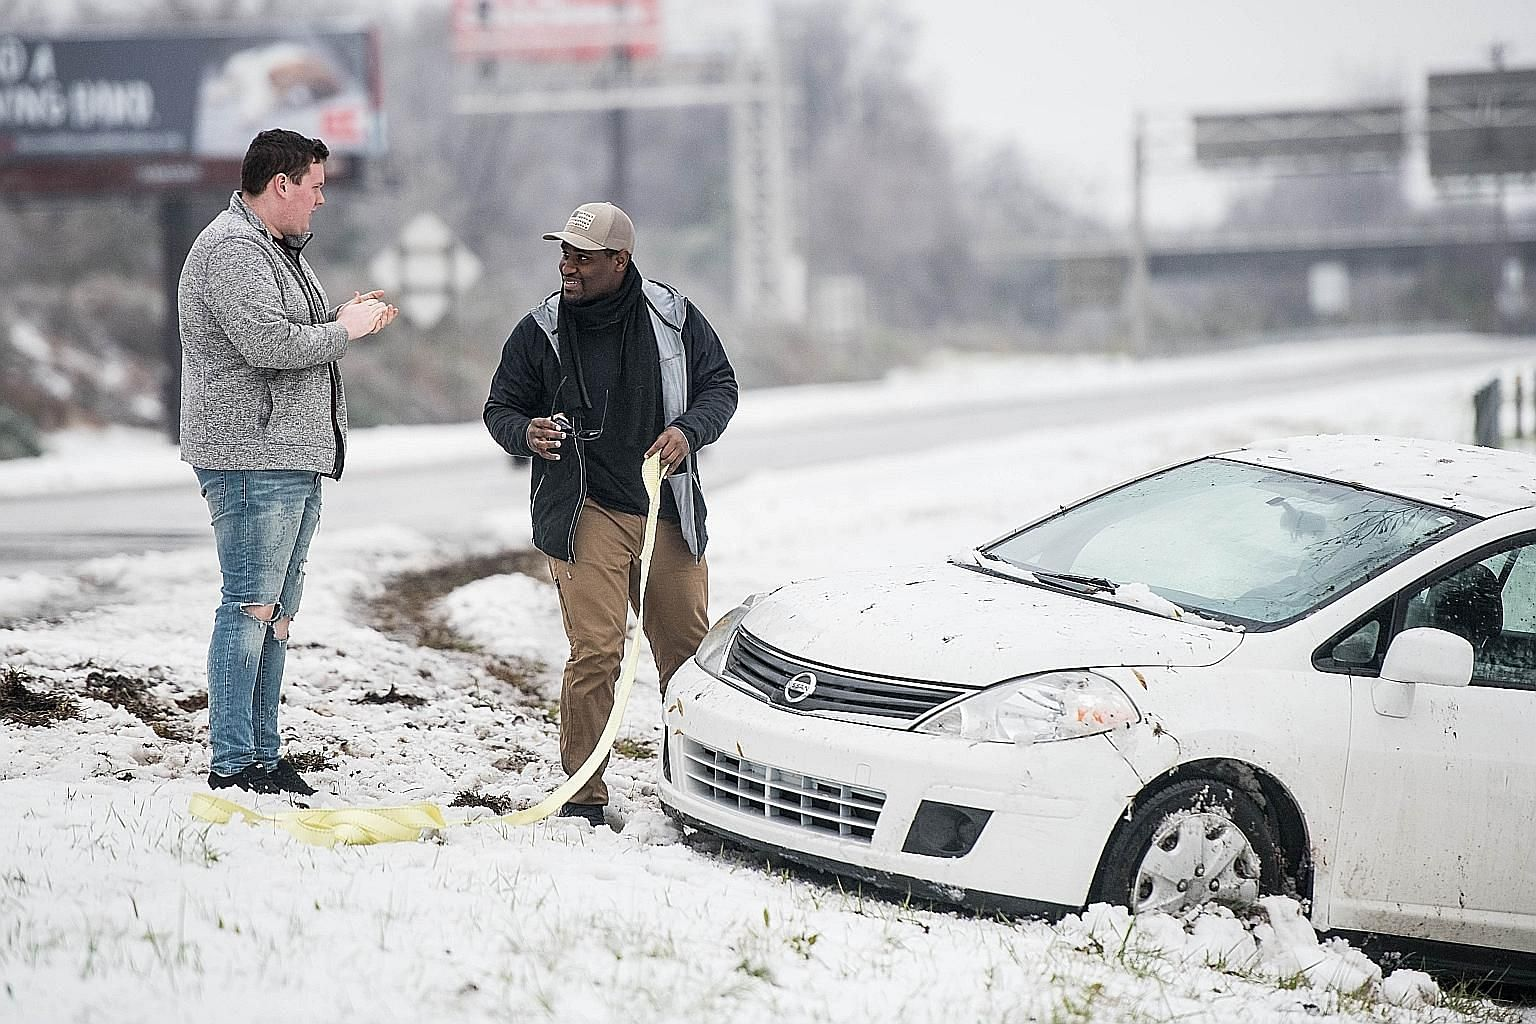 Two men preparing to pull a vehicle out of the snow after a motorist slid off the road on Sunday in Charlotte, North Carolina. The governor's office there said one person died from a heart condition while en route to a shelter and another person died